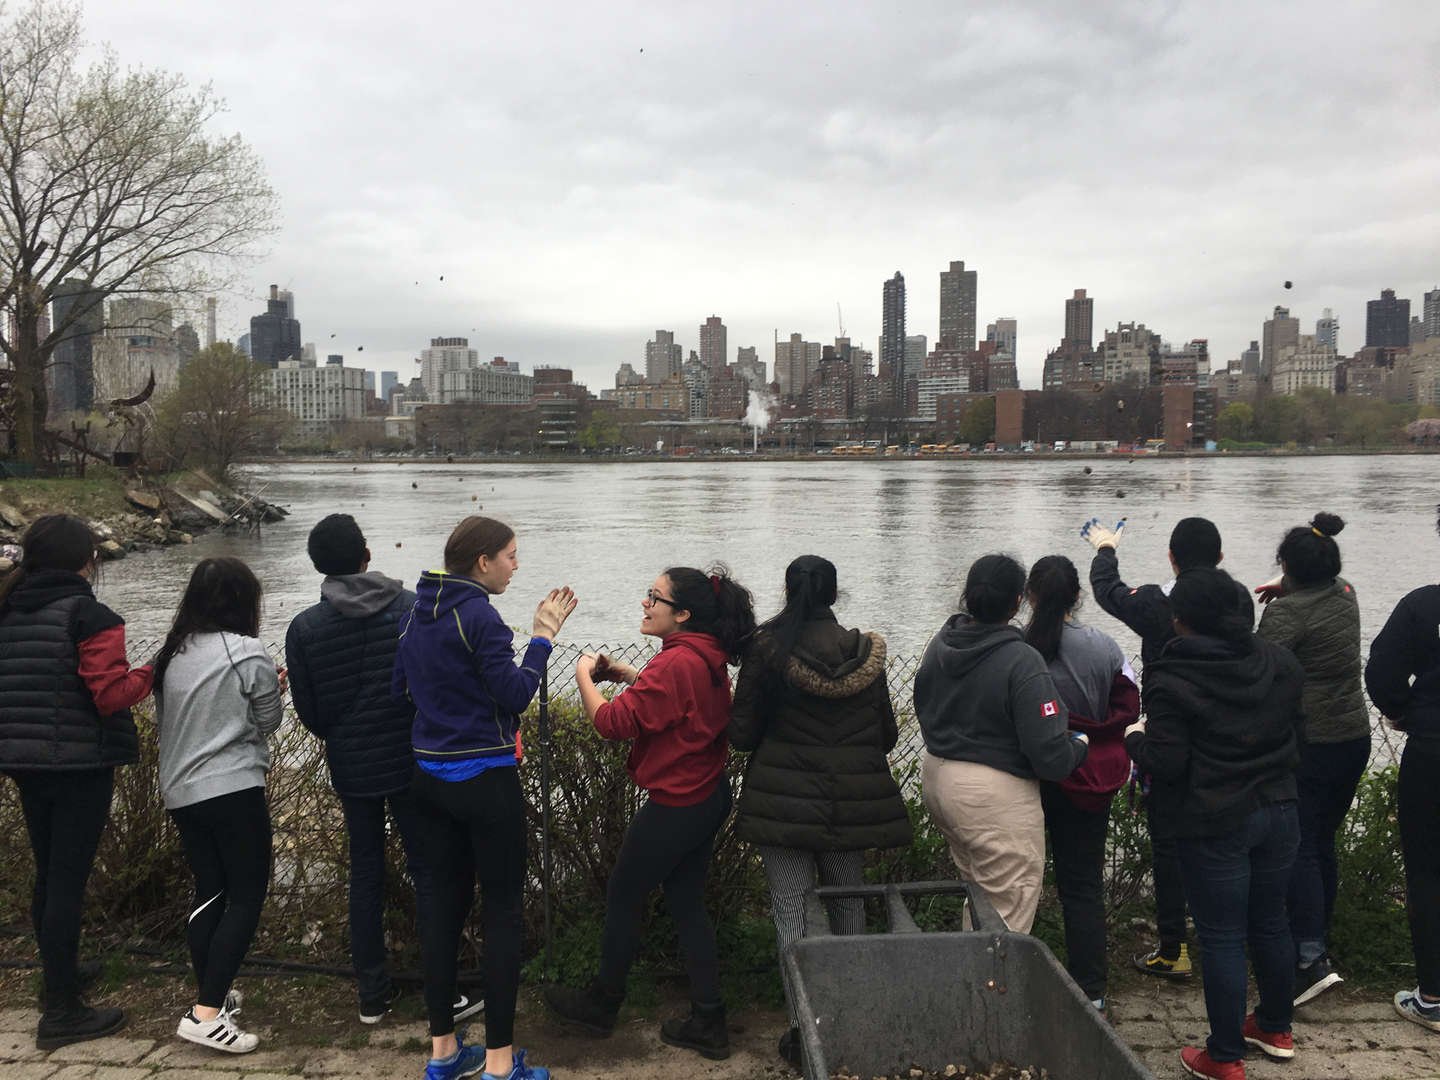 Students chat with each other while standing beside a glistening body of water